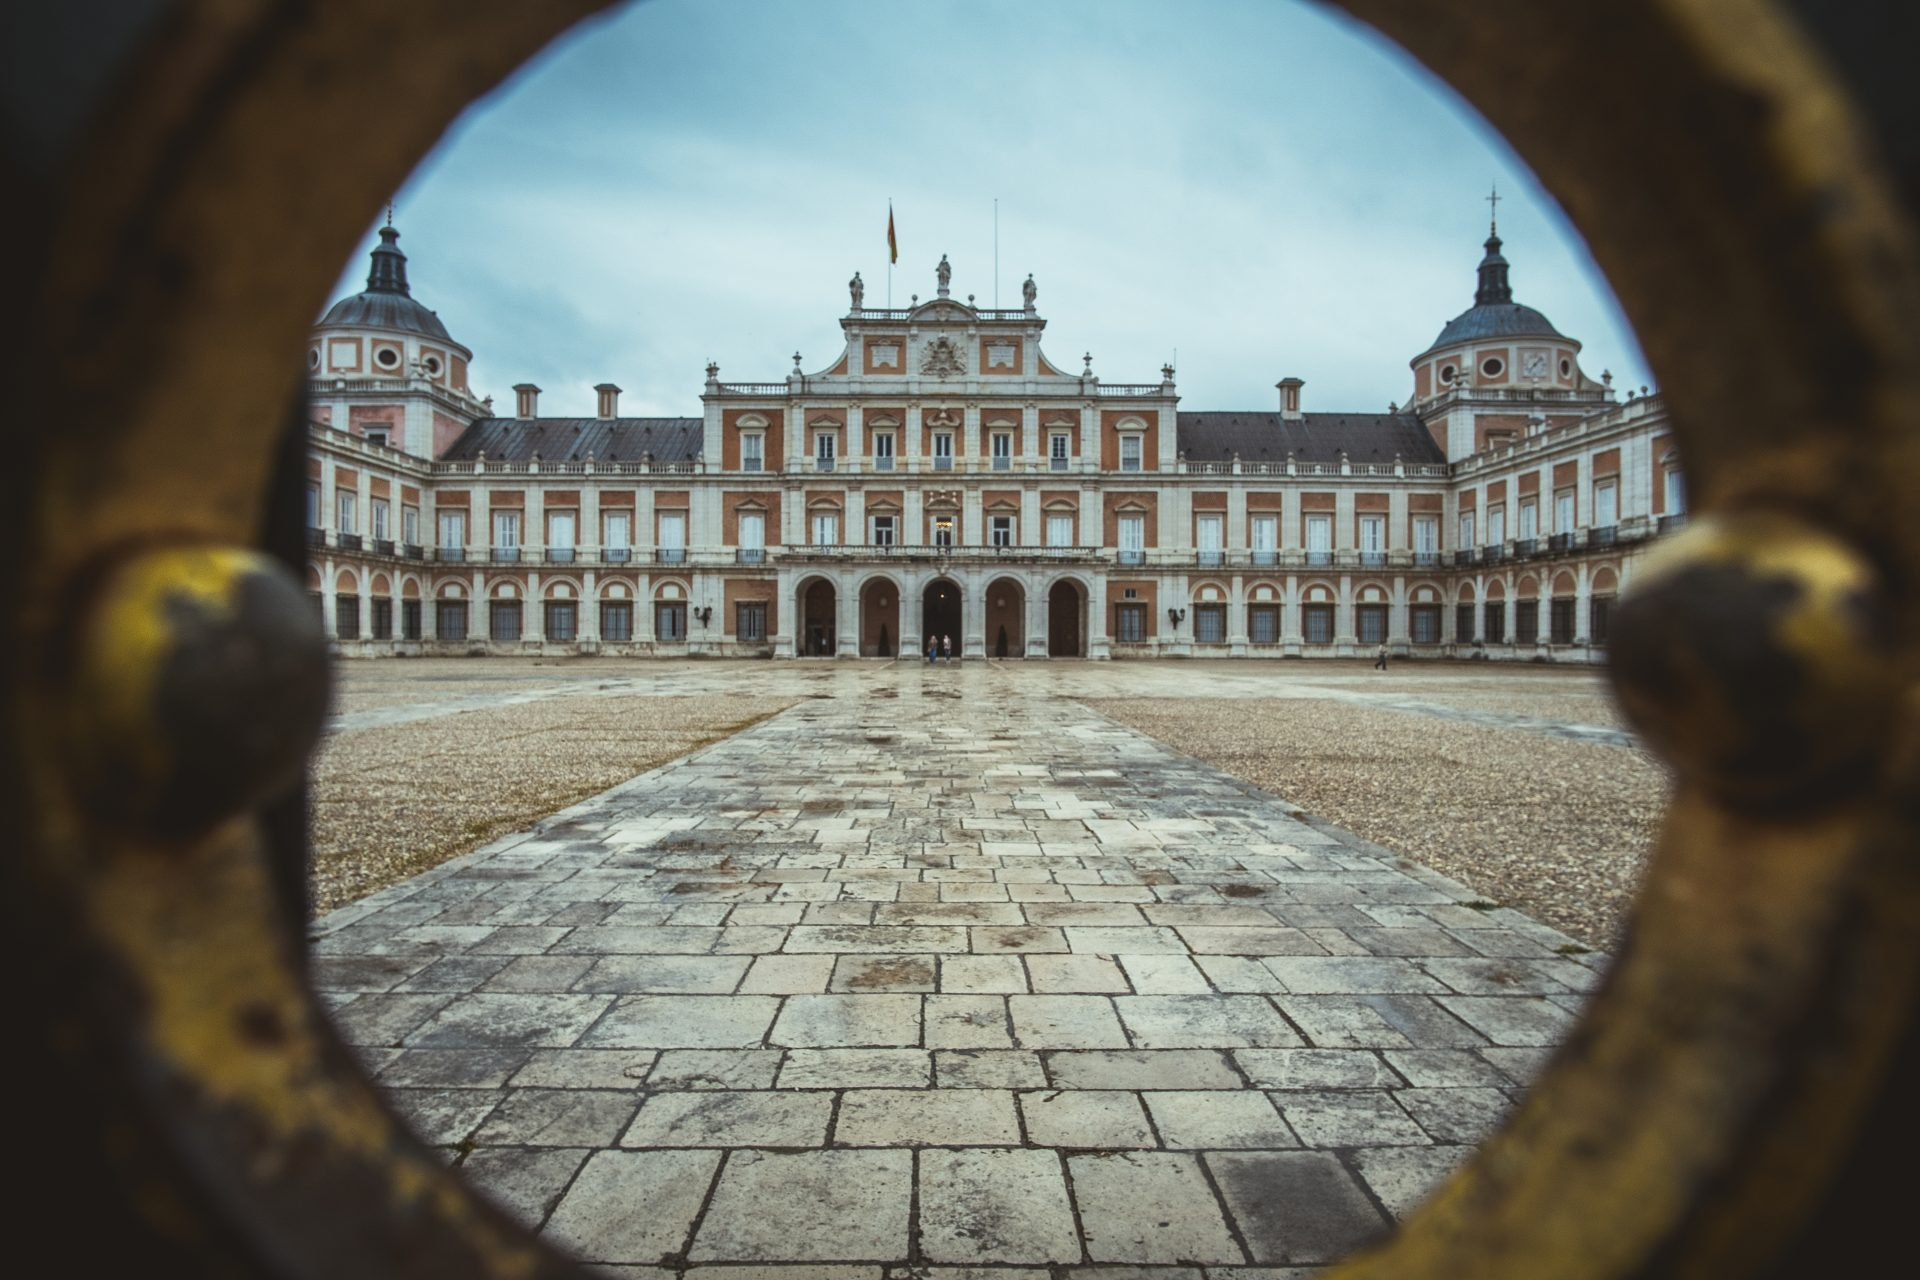 Facade of the Royal Palace of Aranjuez shot through the door shot by Jo Kassis